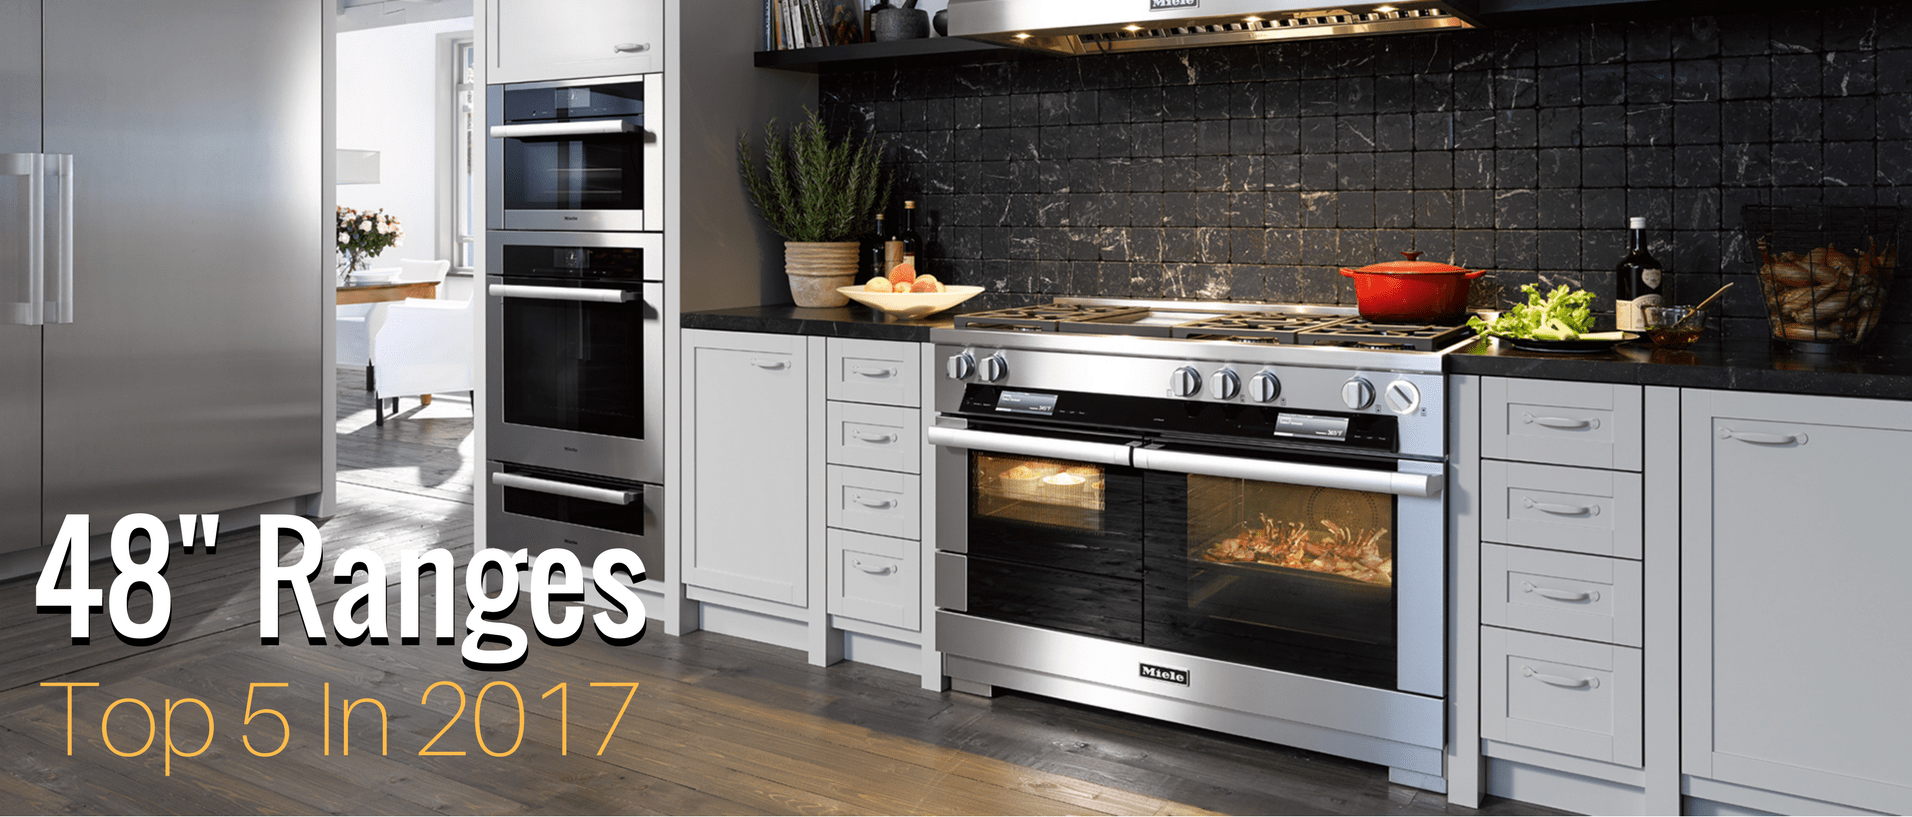 top rated kitchen stoves small round table five 48 inch range ovens of 2017 appliances connection the is cornerstone any modern and there are a lot options from which to choose whether you replacing an older oven or just